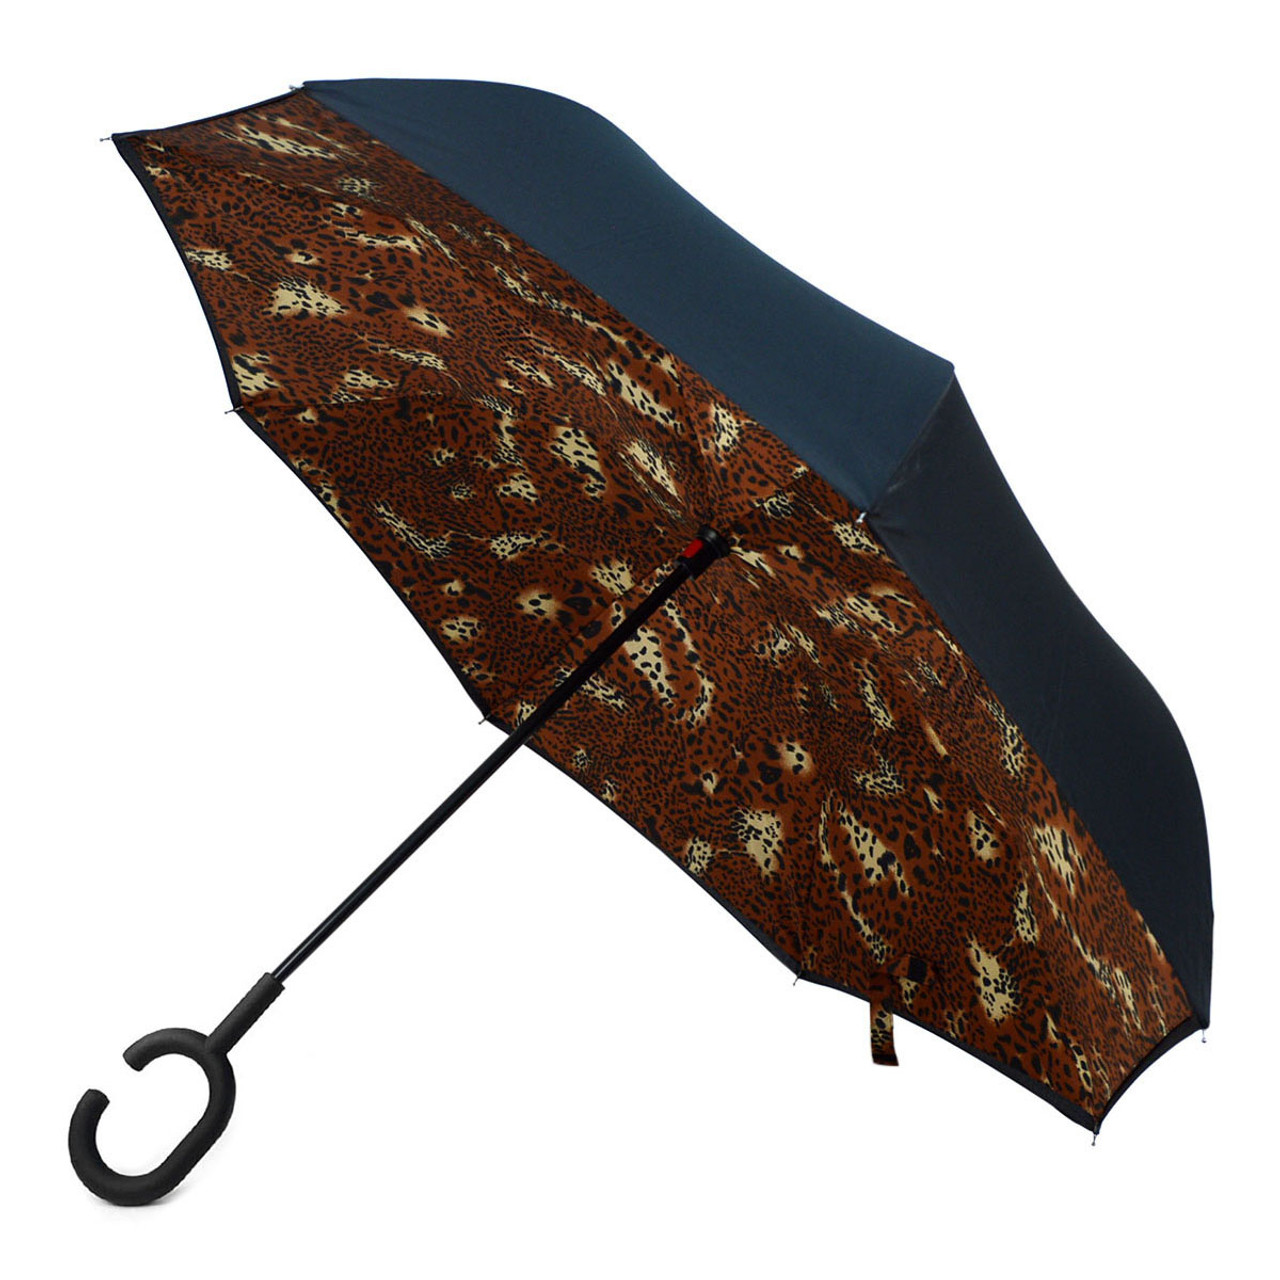 Reverse Folding Umbrella for Car Double Layer Inverted Umbrellas with Funny Owl Mother Mummy Print